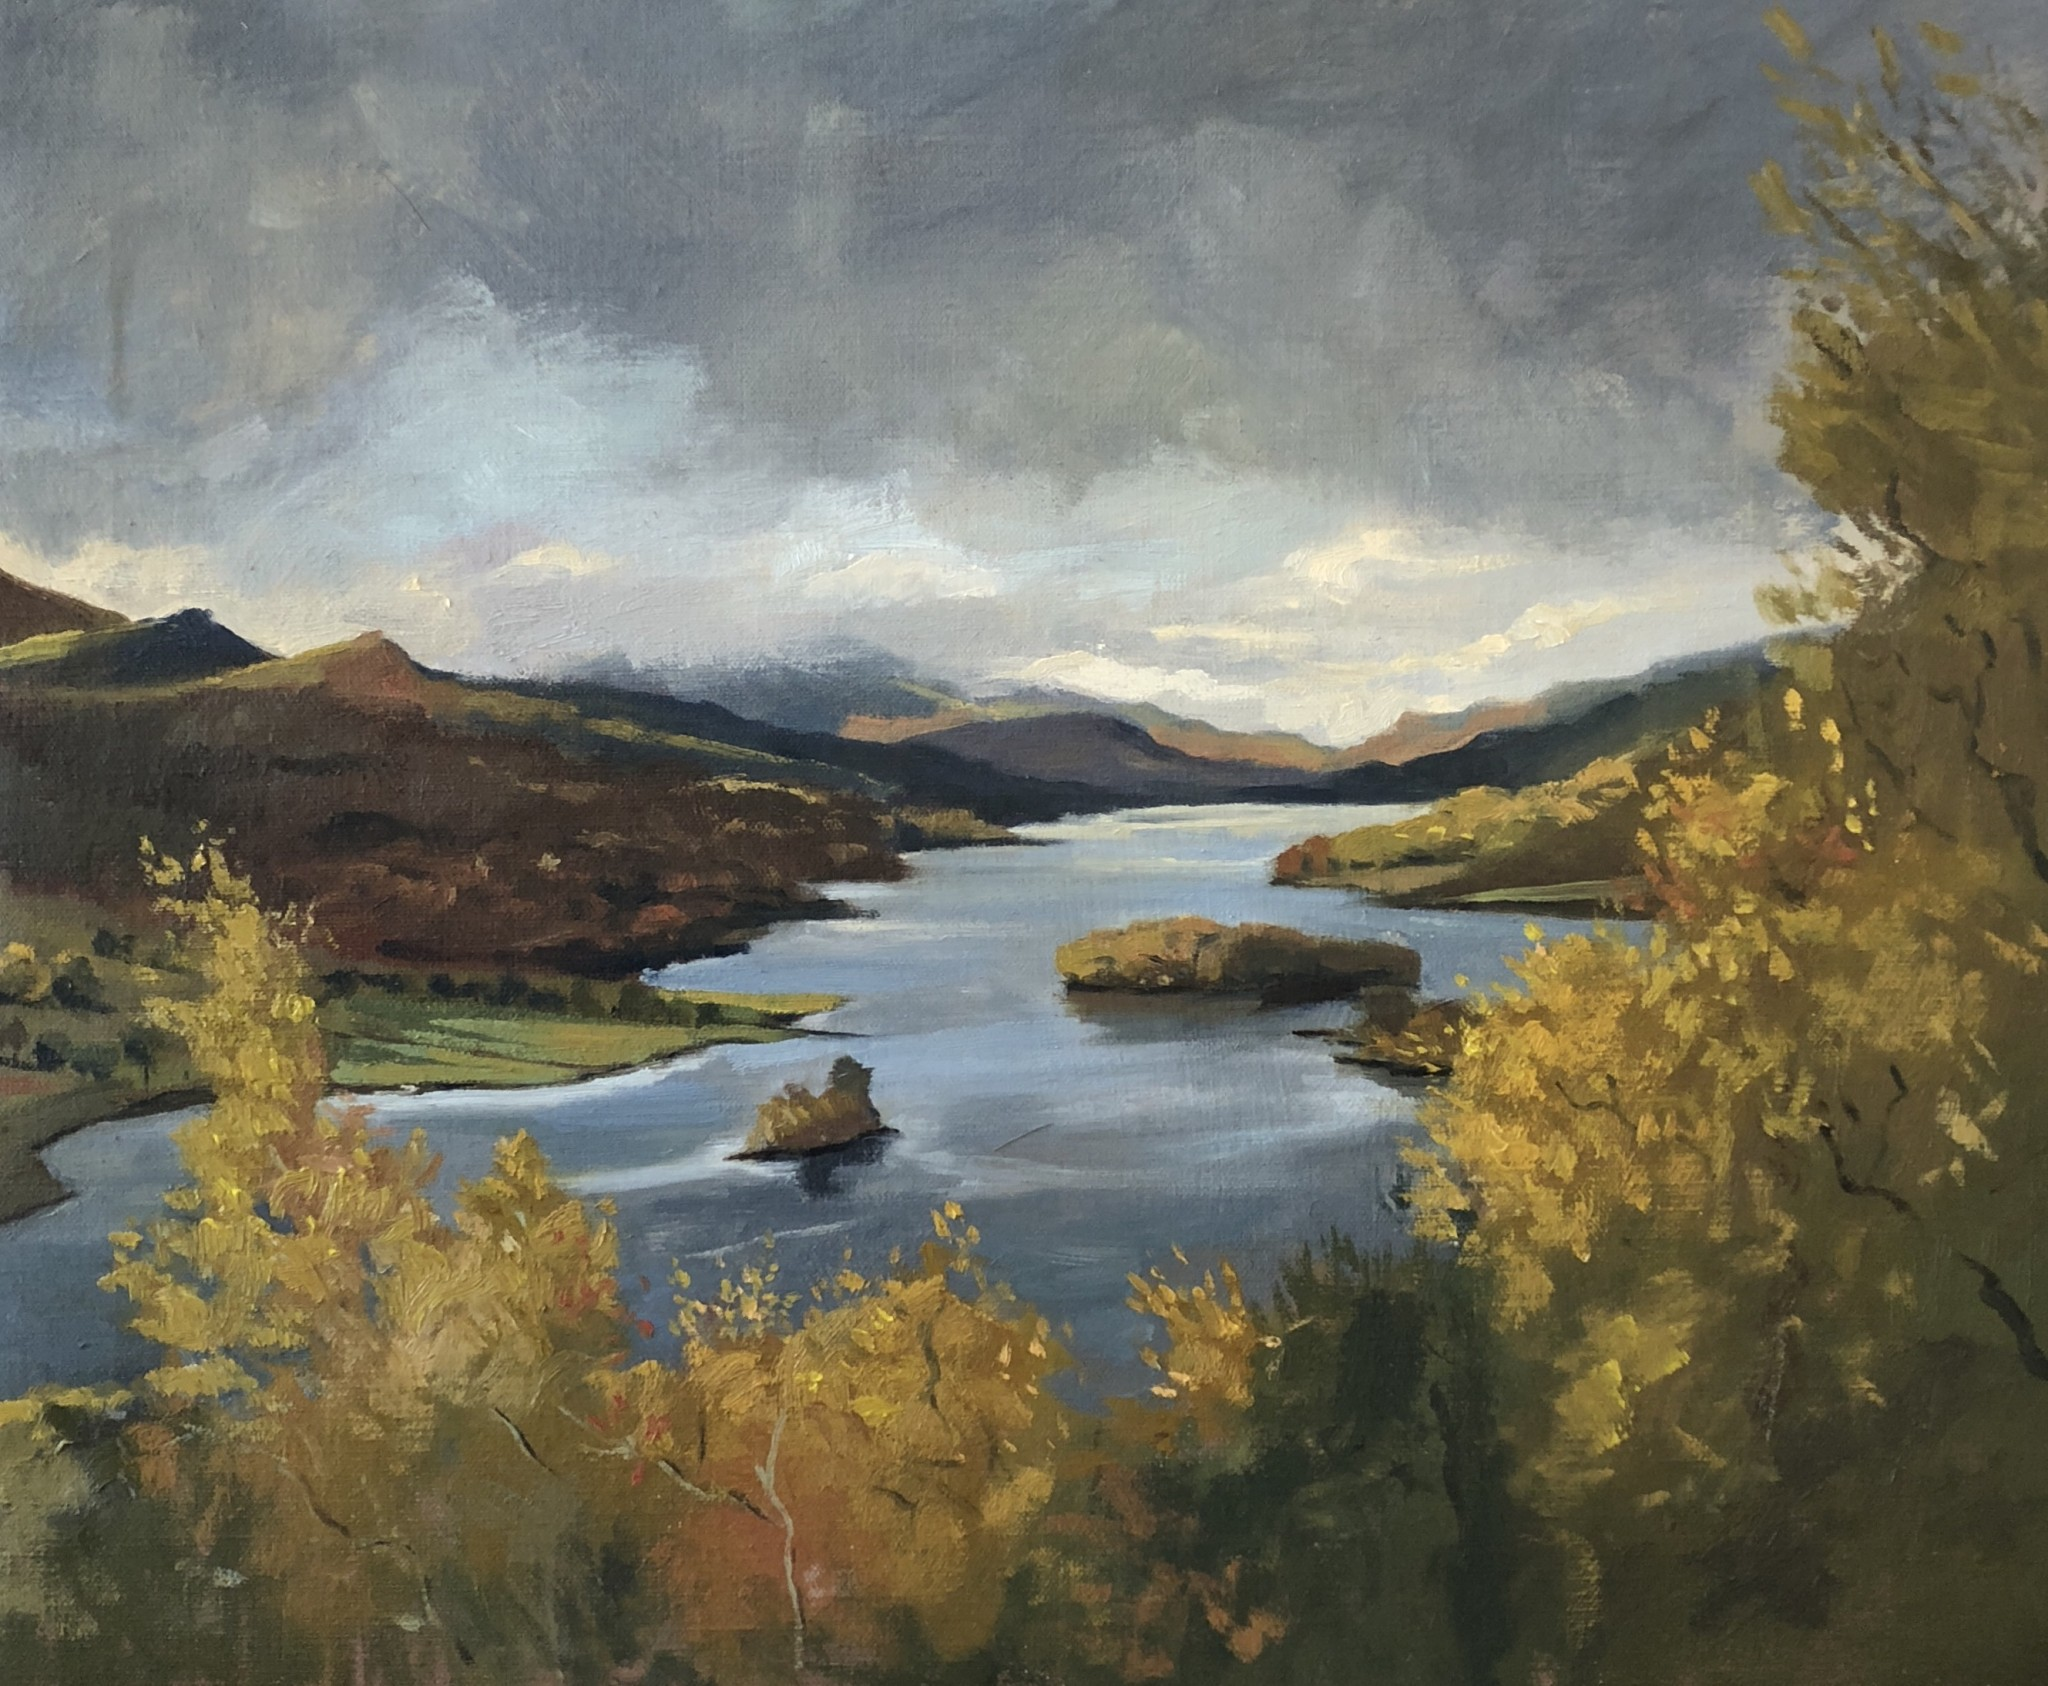 Autumn stormy light over Loch Tummel